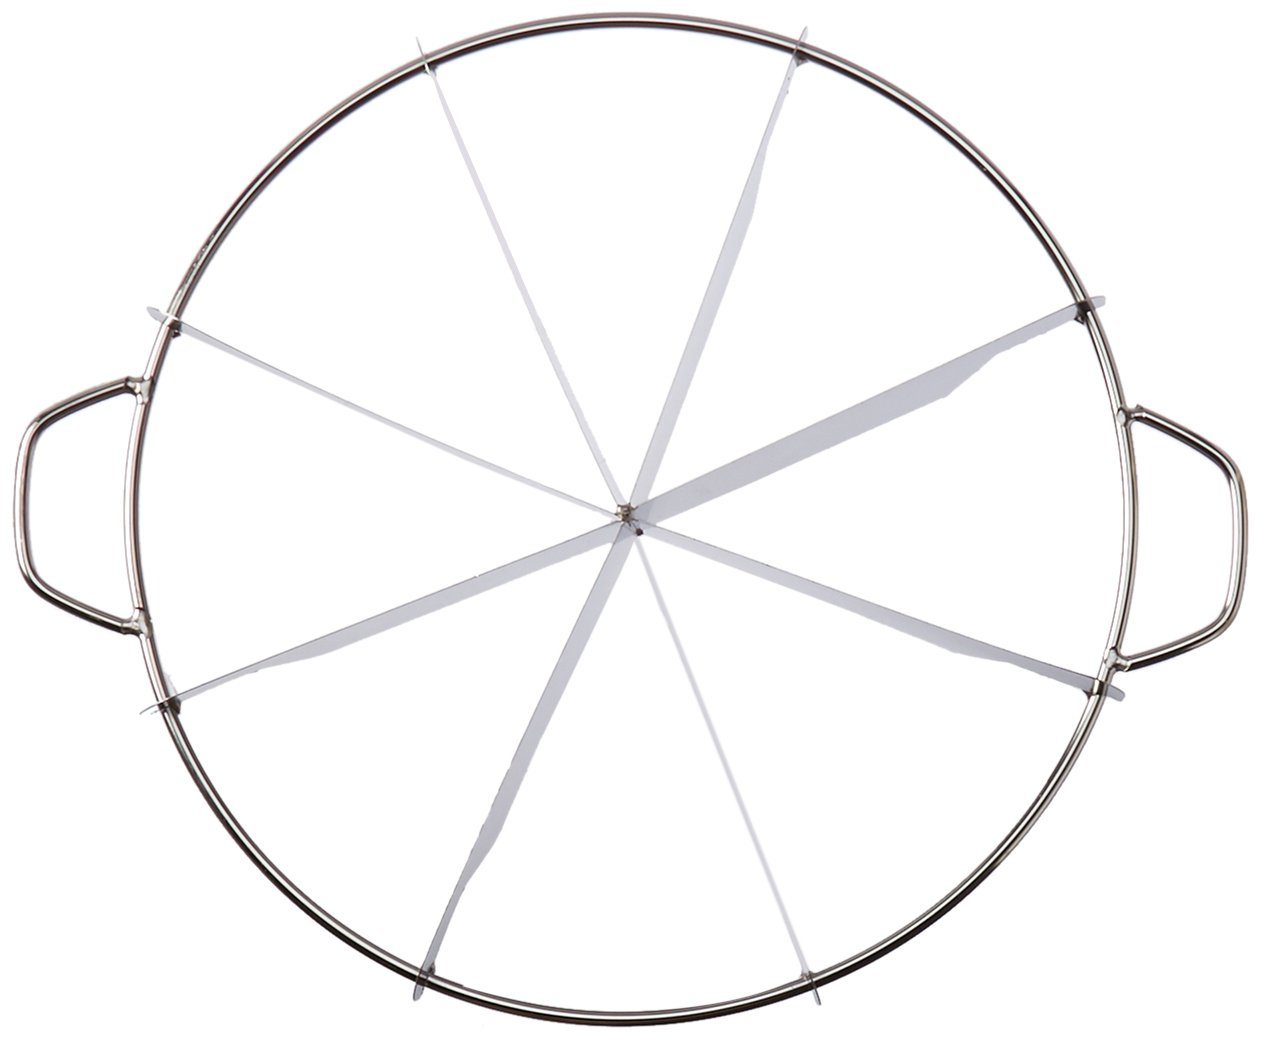 Winco 8-Cut Stainless Steel Pie Cutters